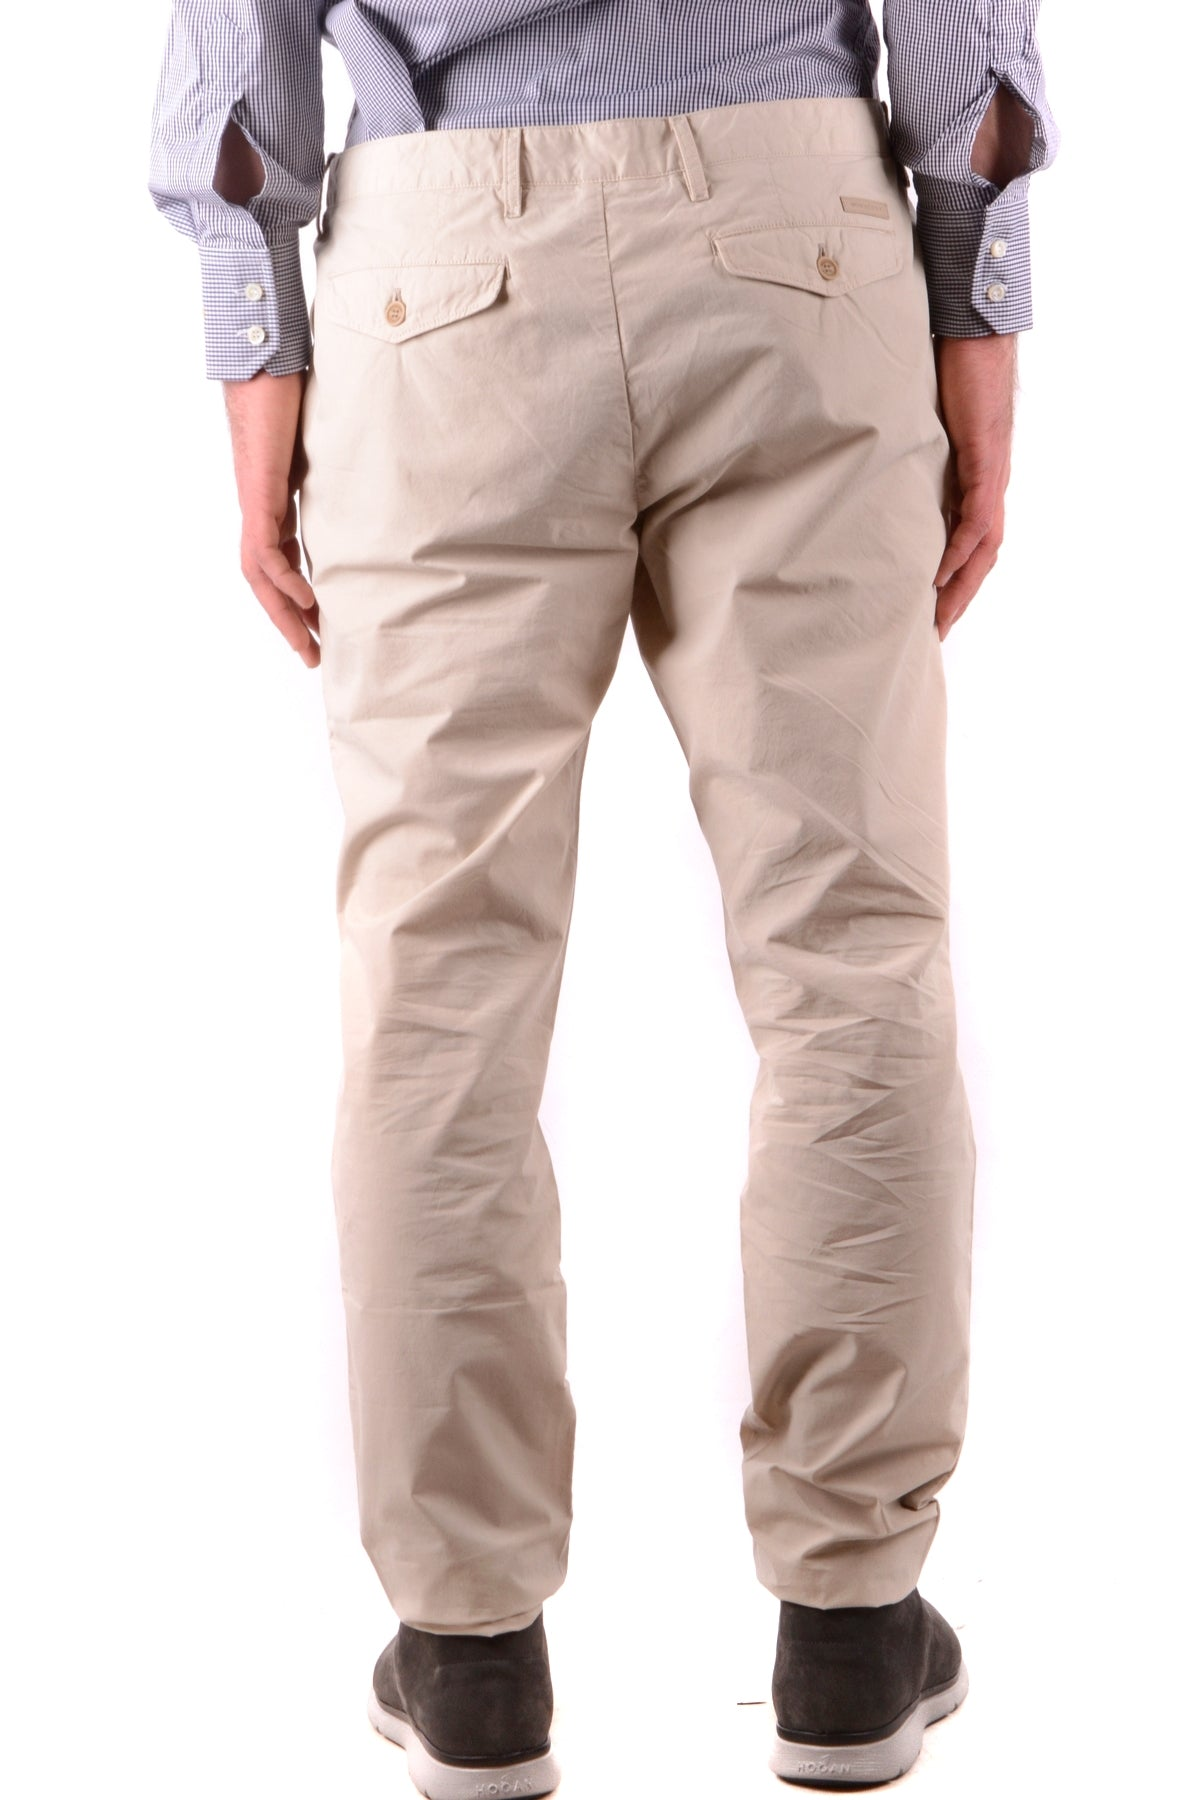 Trousers Burberry-Trousers - MAN-Product Details Season: Spring / SummerTerms: New With LabelMain Color: BeigeGender: ManMade In: ThailandManufacturer Part Number: 4011597 1010Size: UsYear: 2018Clothing Type: TrousersComposition: Cotton 100%-Keyomi-Sook